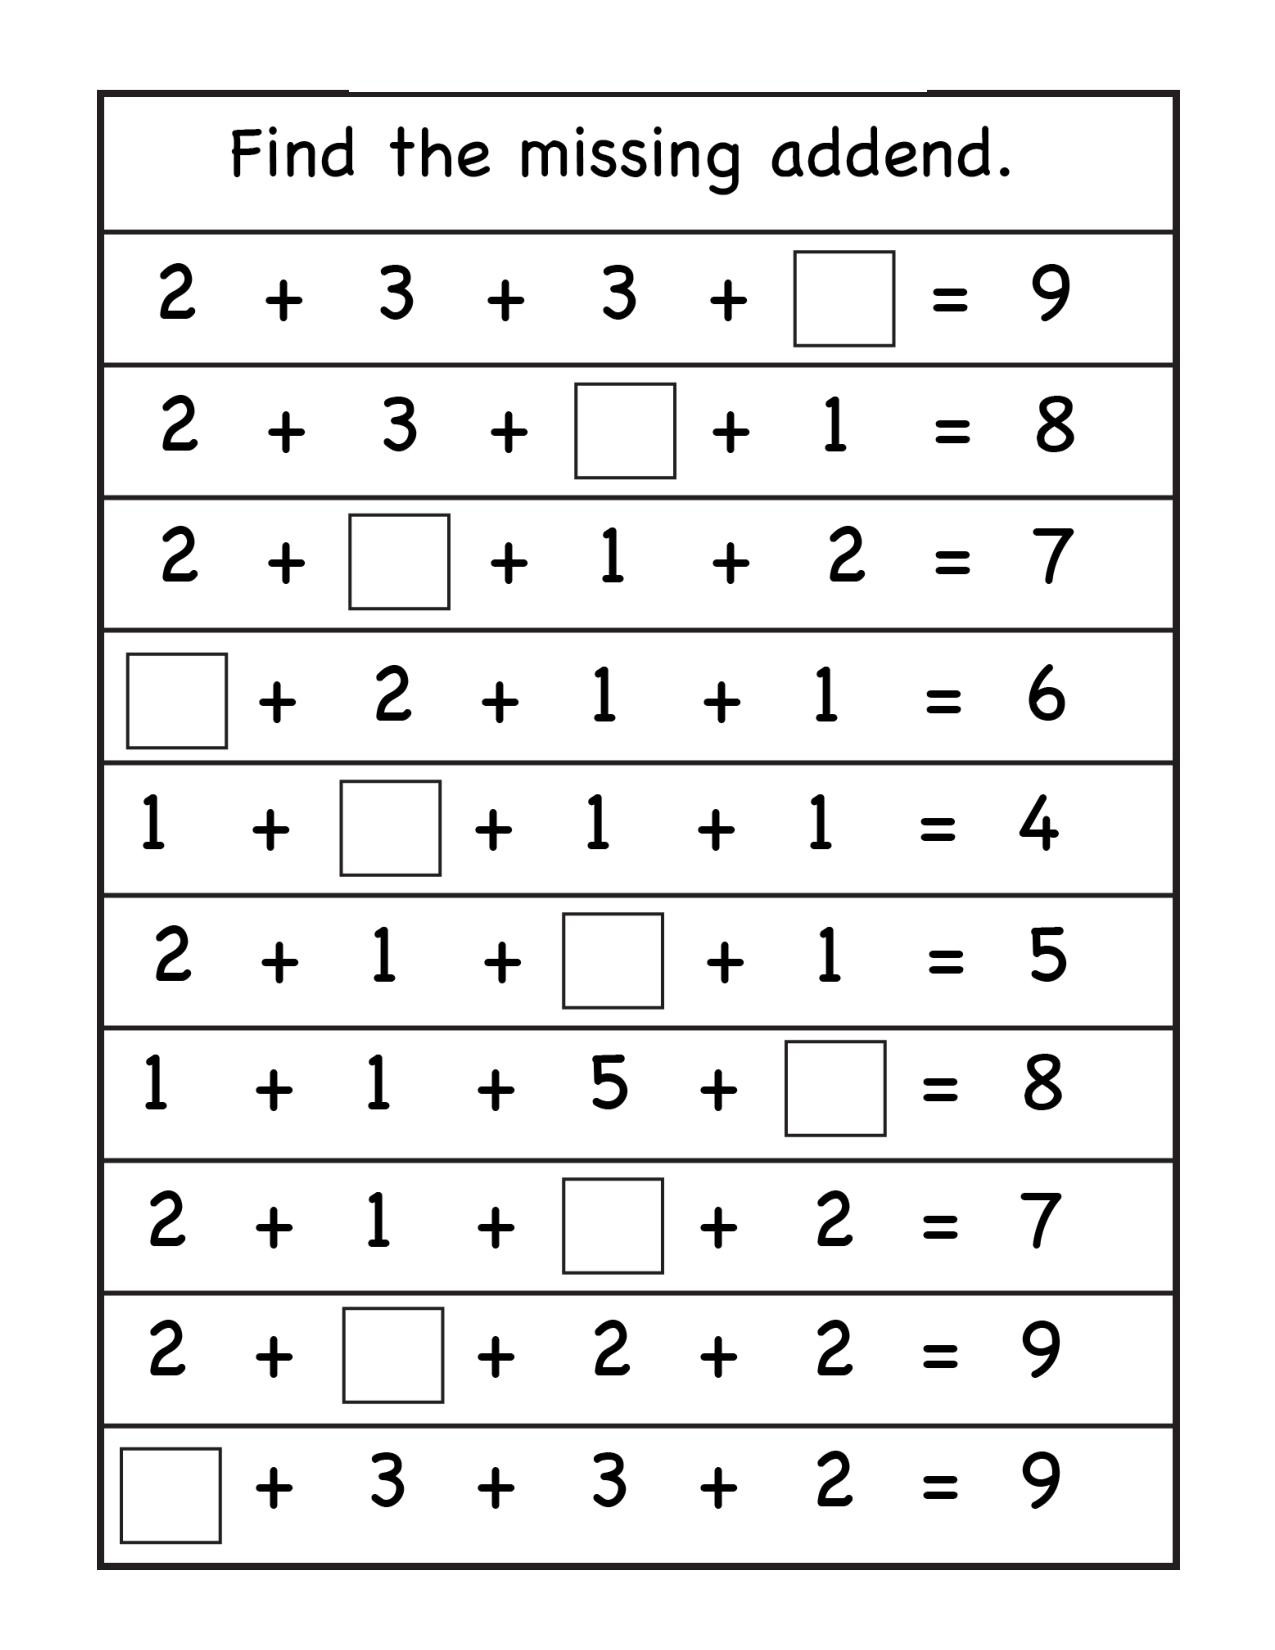 Missing Addend Worksheets 1st Grade 1st Grade Archives Page 4 Of 13